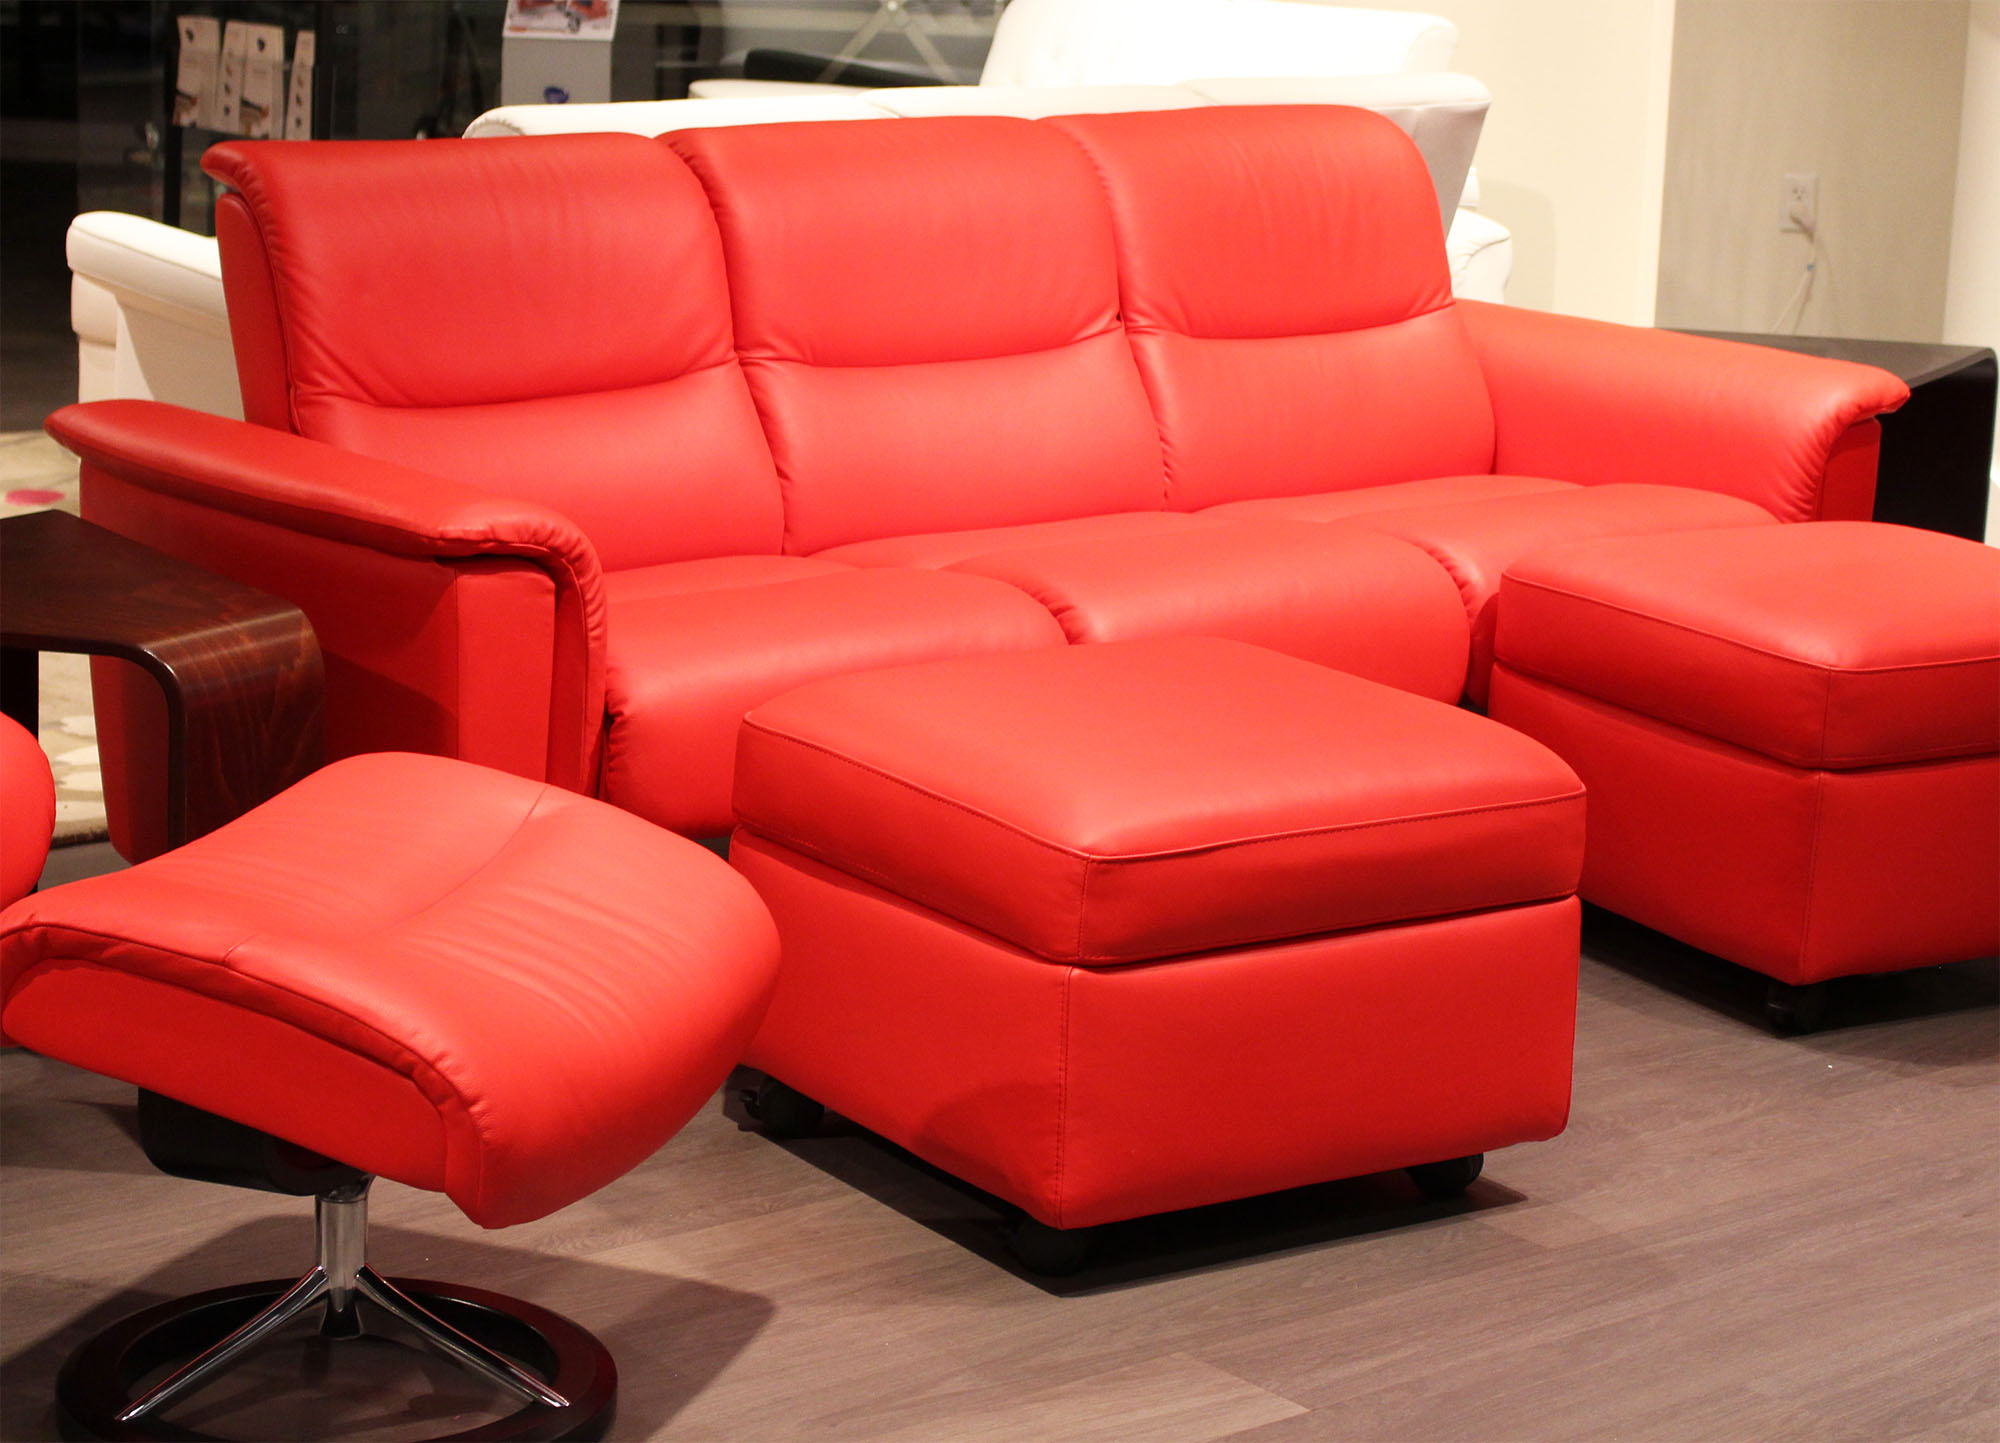 Stressless paloma tomato leather by ekornes stressless for Paloma leather sofa